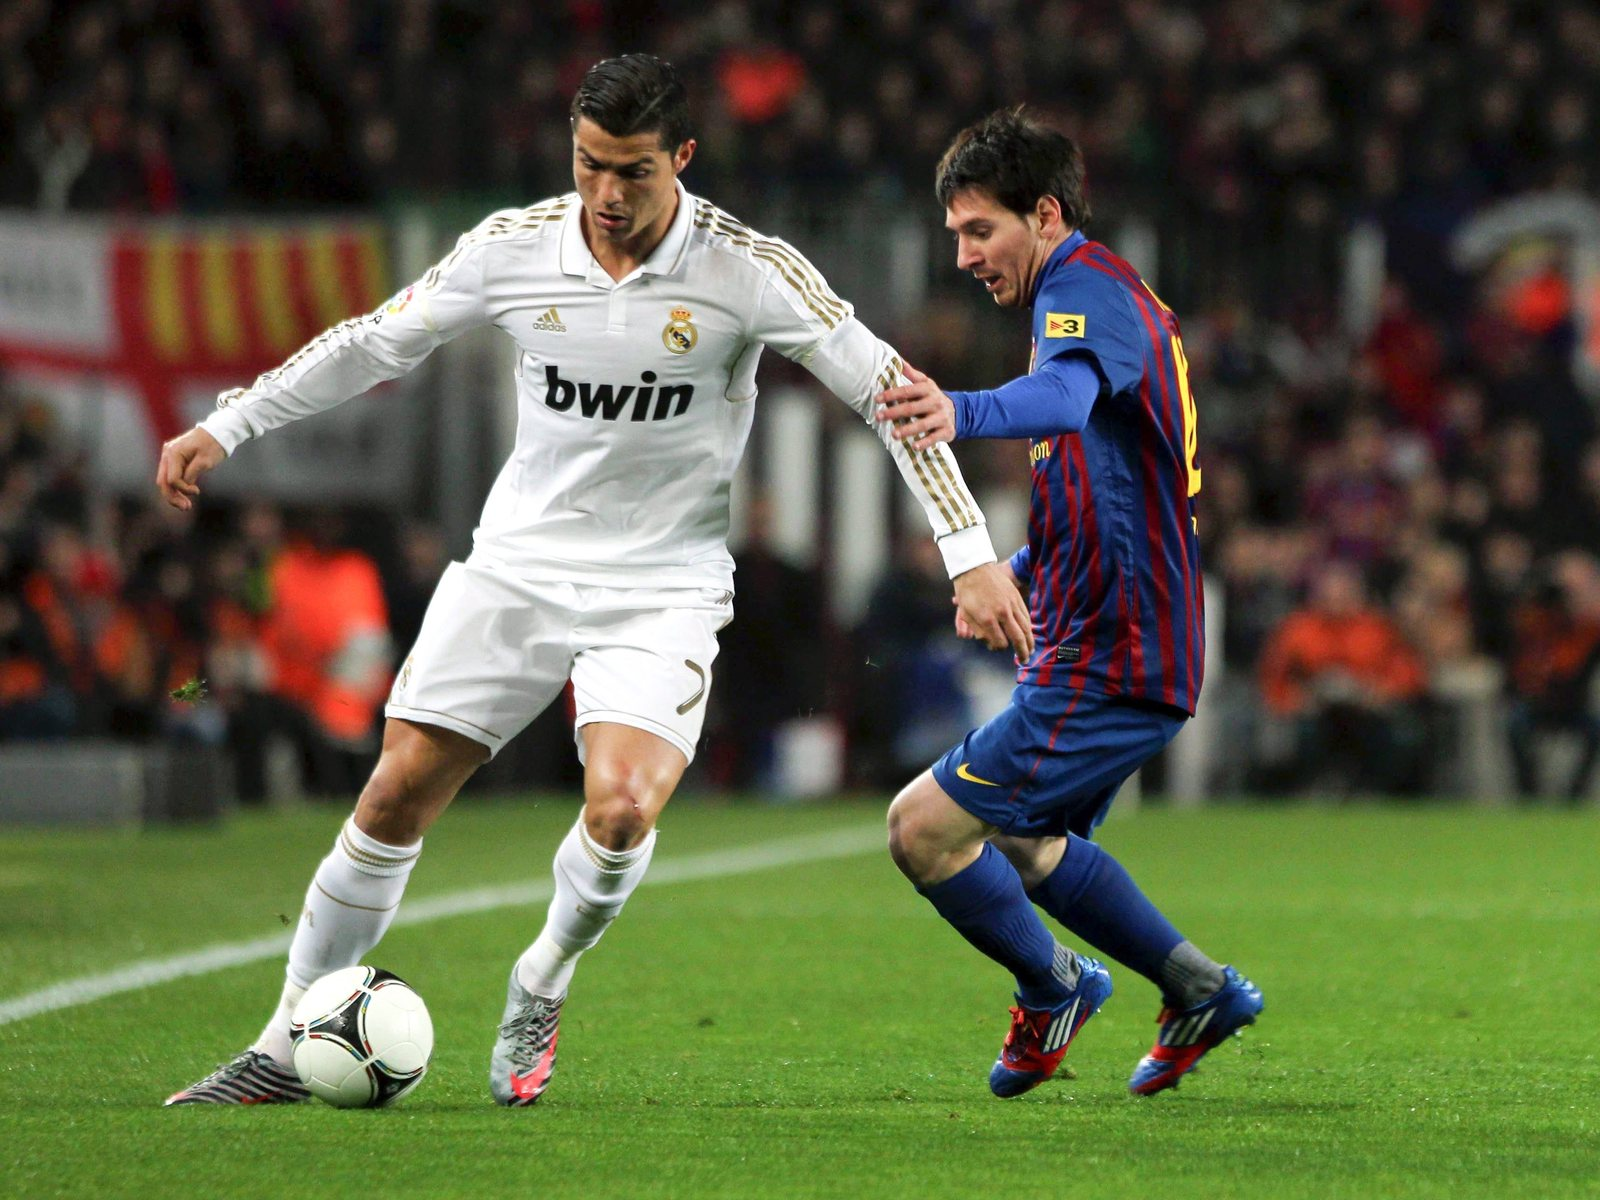 2012 13 ronaldo vs messi wallpaper 2012 13 ronaldo vs messi wallpaper 1600x1200